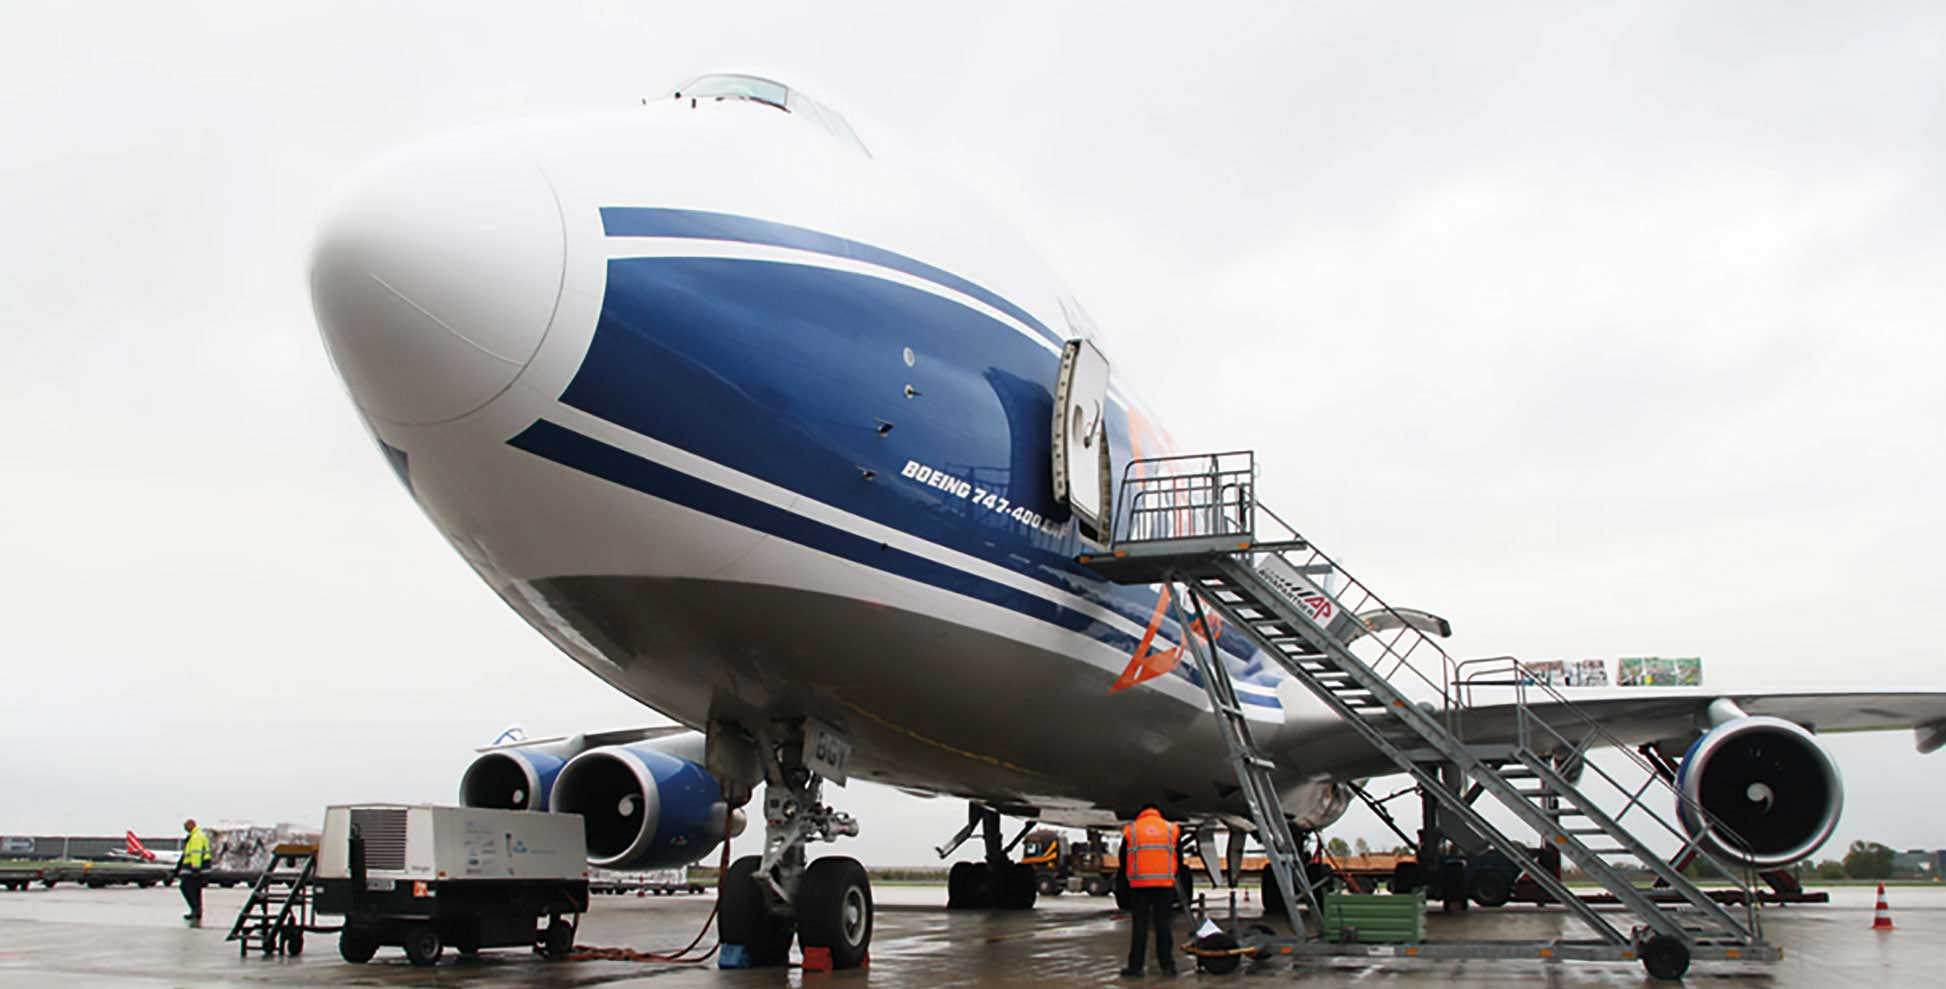 Picture of aircraft during loading